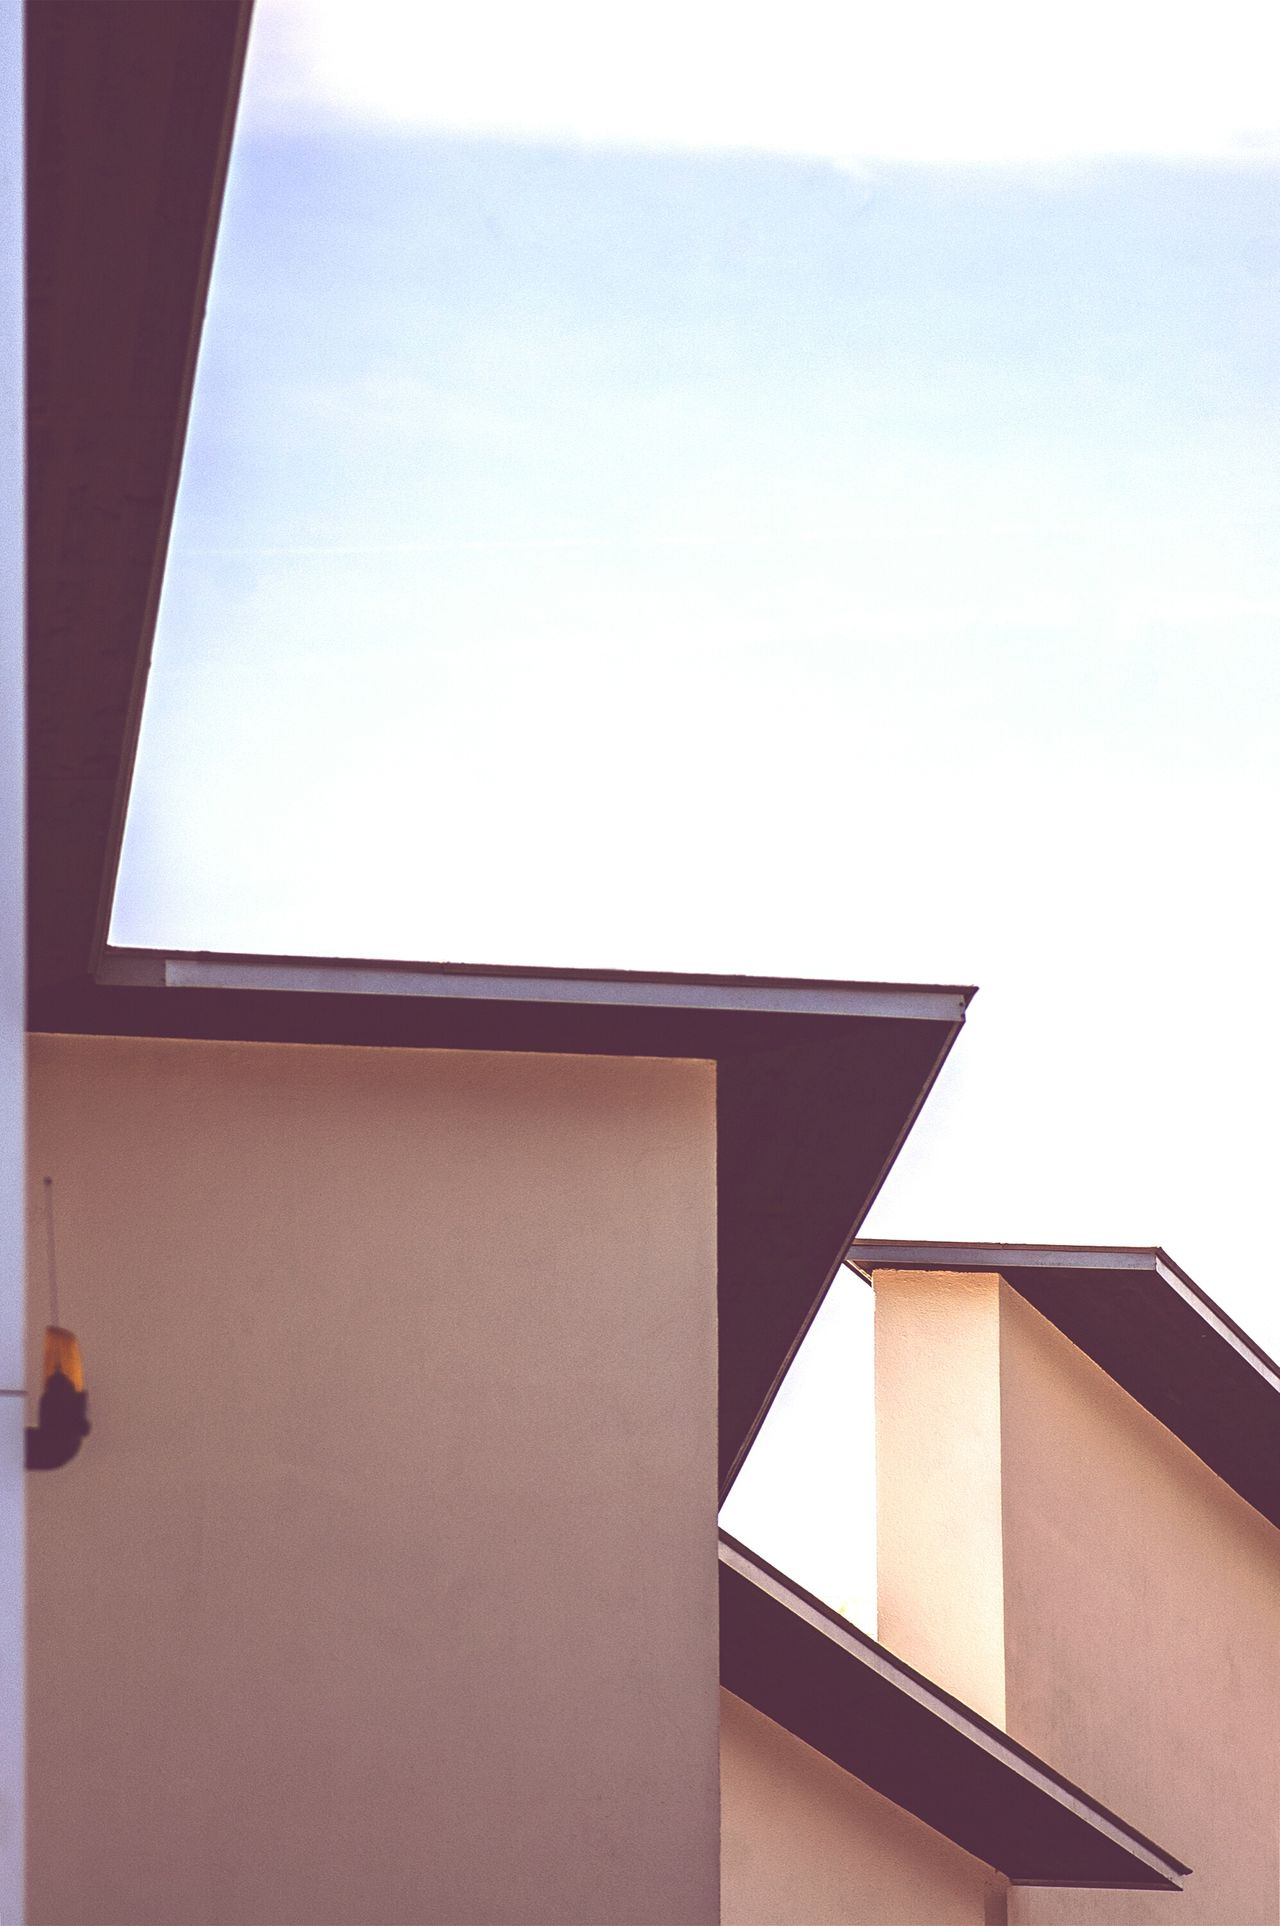 Beautiful stock photos of roof, Architecture, Brunico - Bruneck, Built Structure, Close-Up